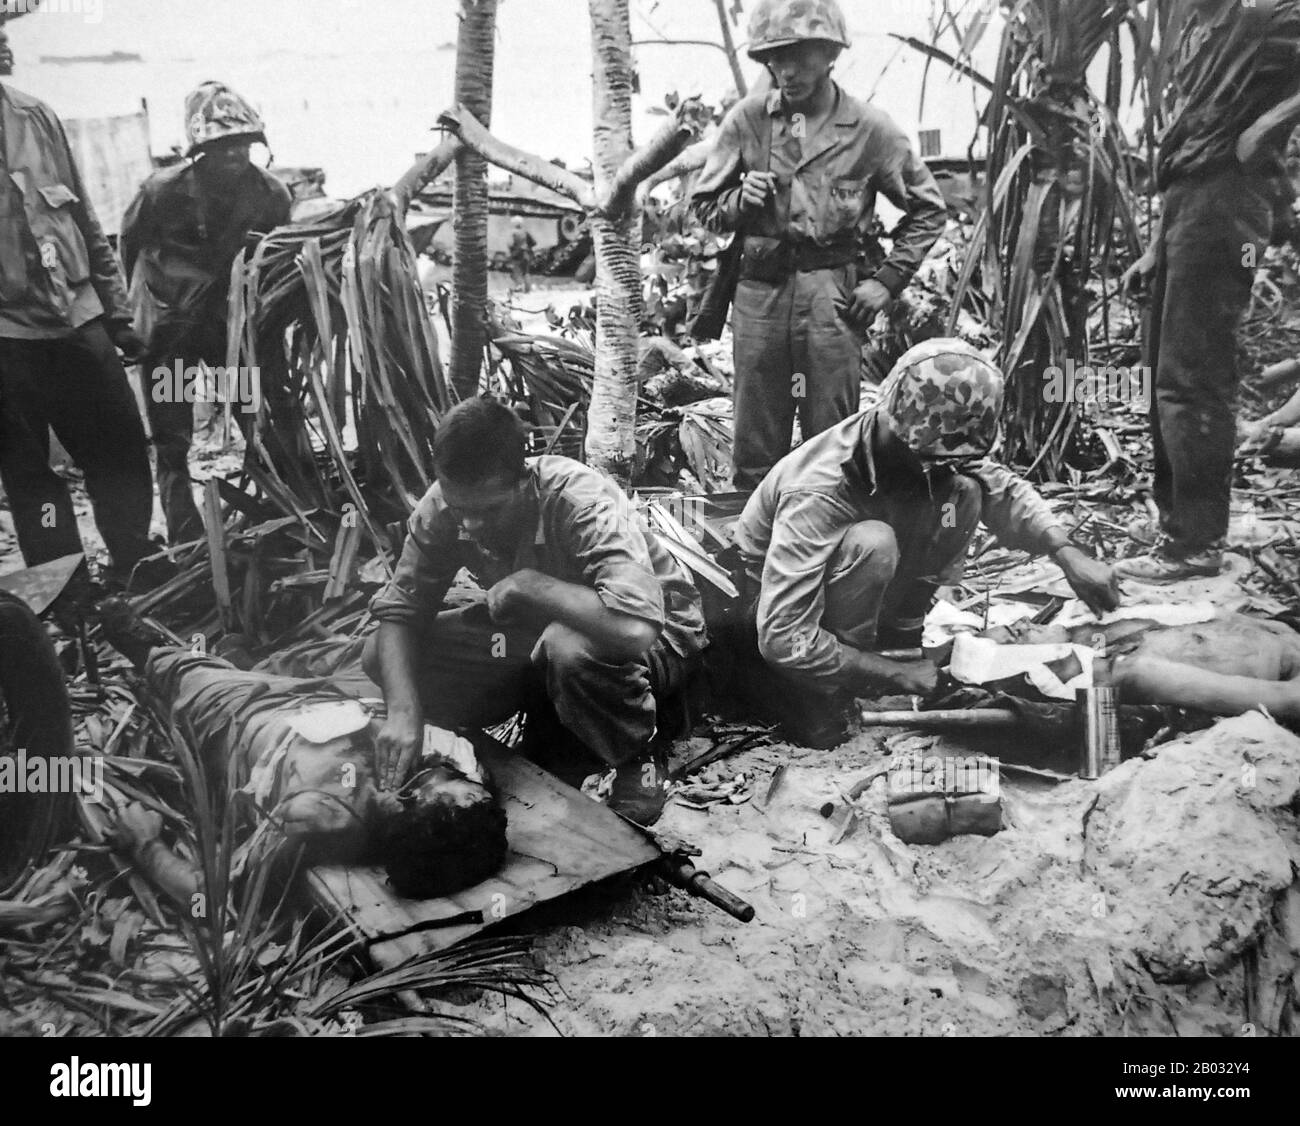 The Battle of Peleliu was fought between the United States and the Empire  of Japan in the Pacific Theater of World War II, from September to November  1944 on the island of